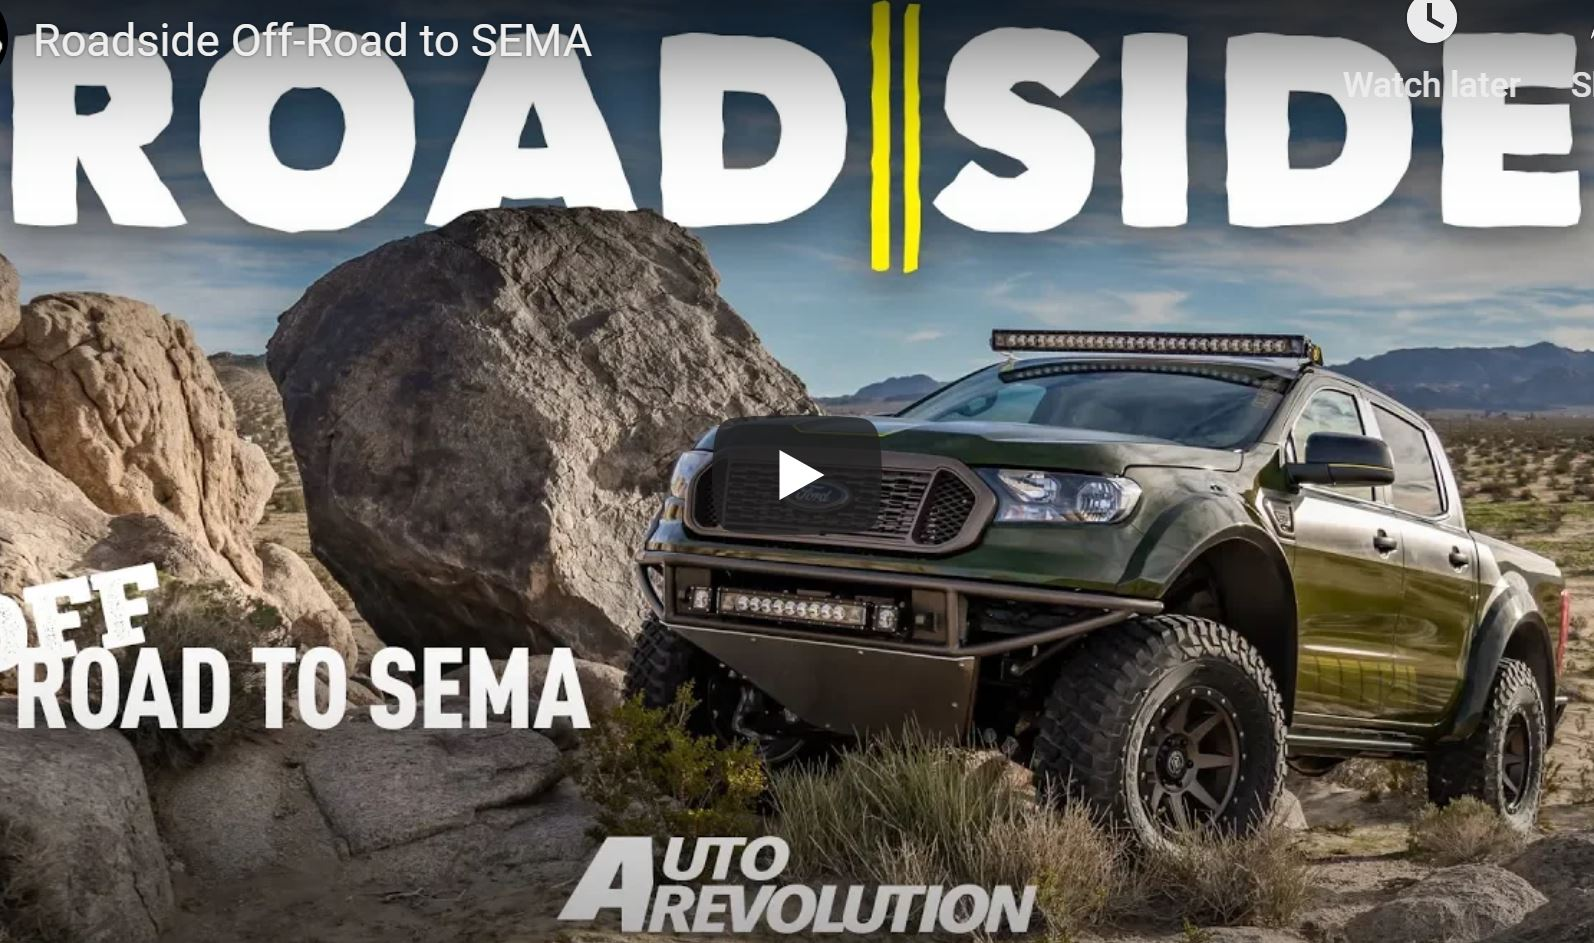 Off-Road To SEMA: Watch The New Ford Ranger Be Transformed Into A Beast For The SEMA Show